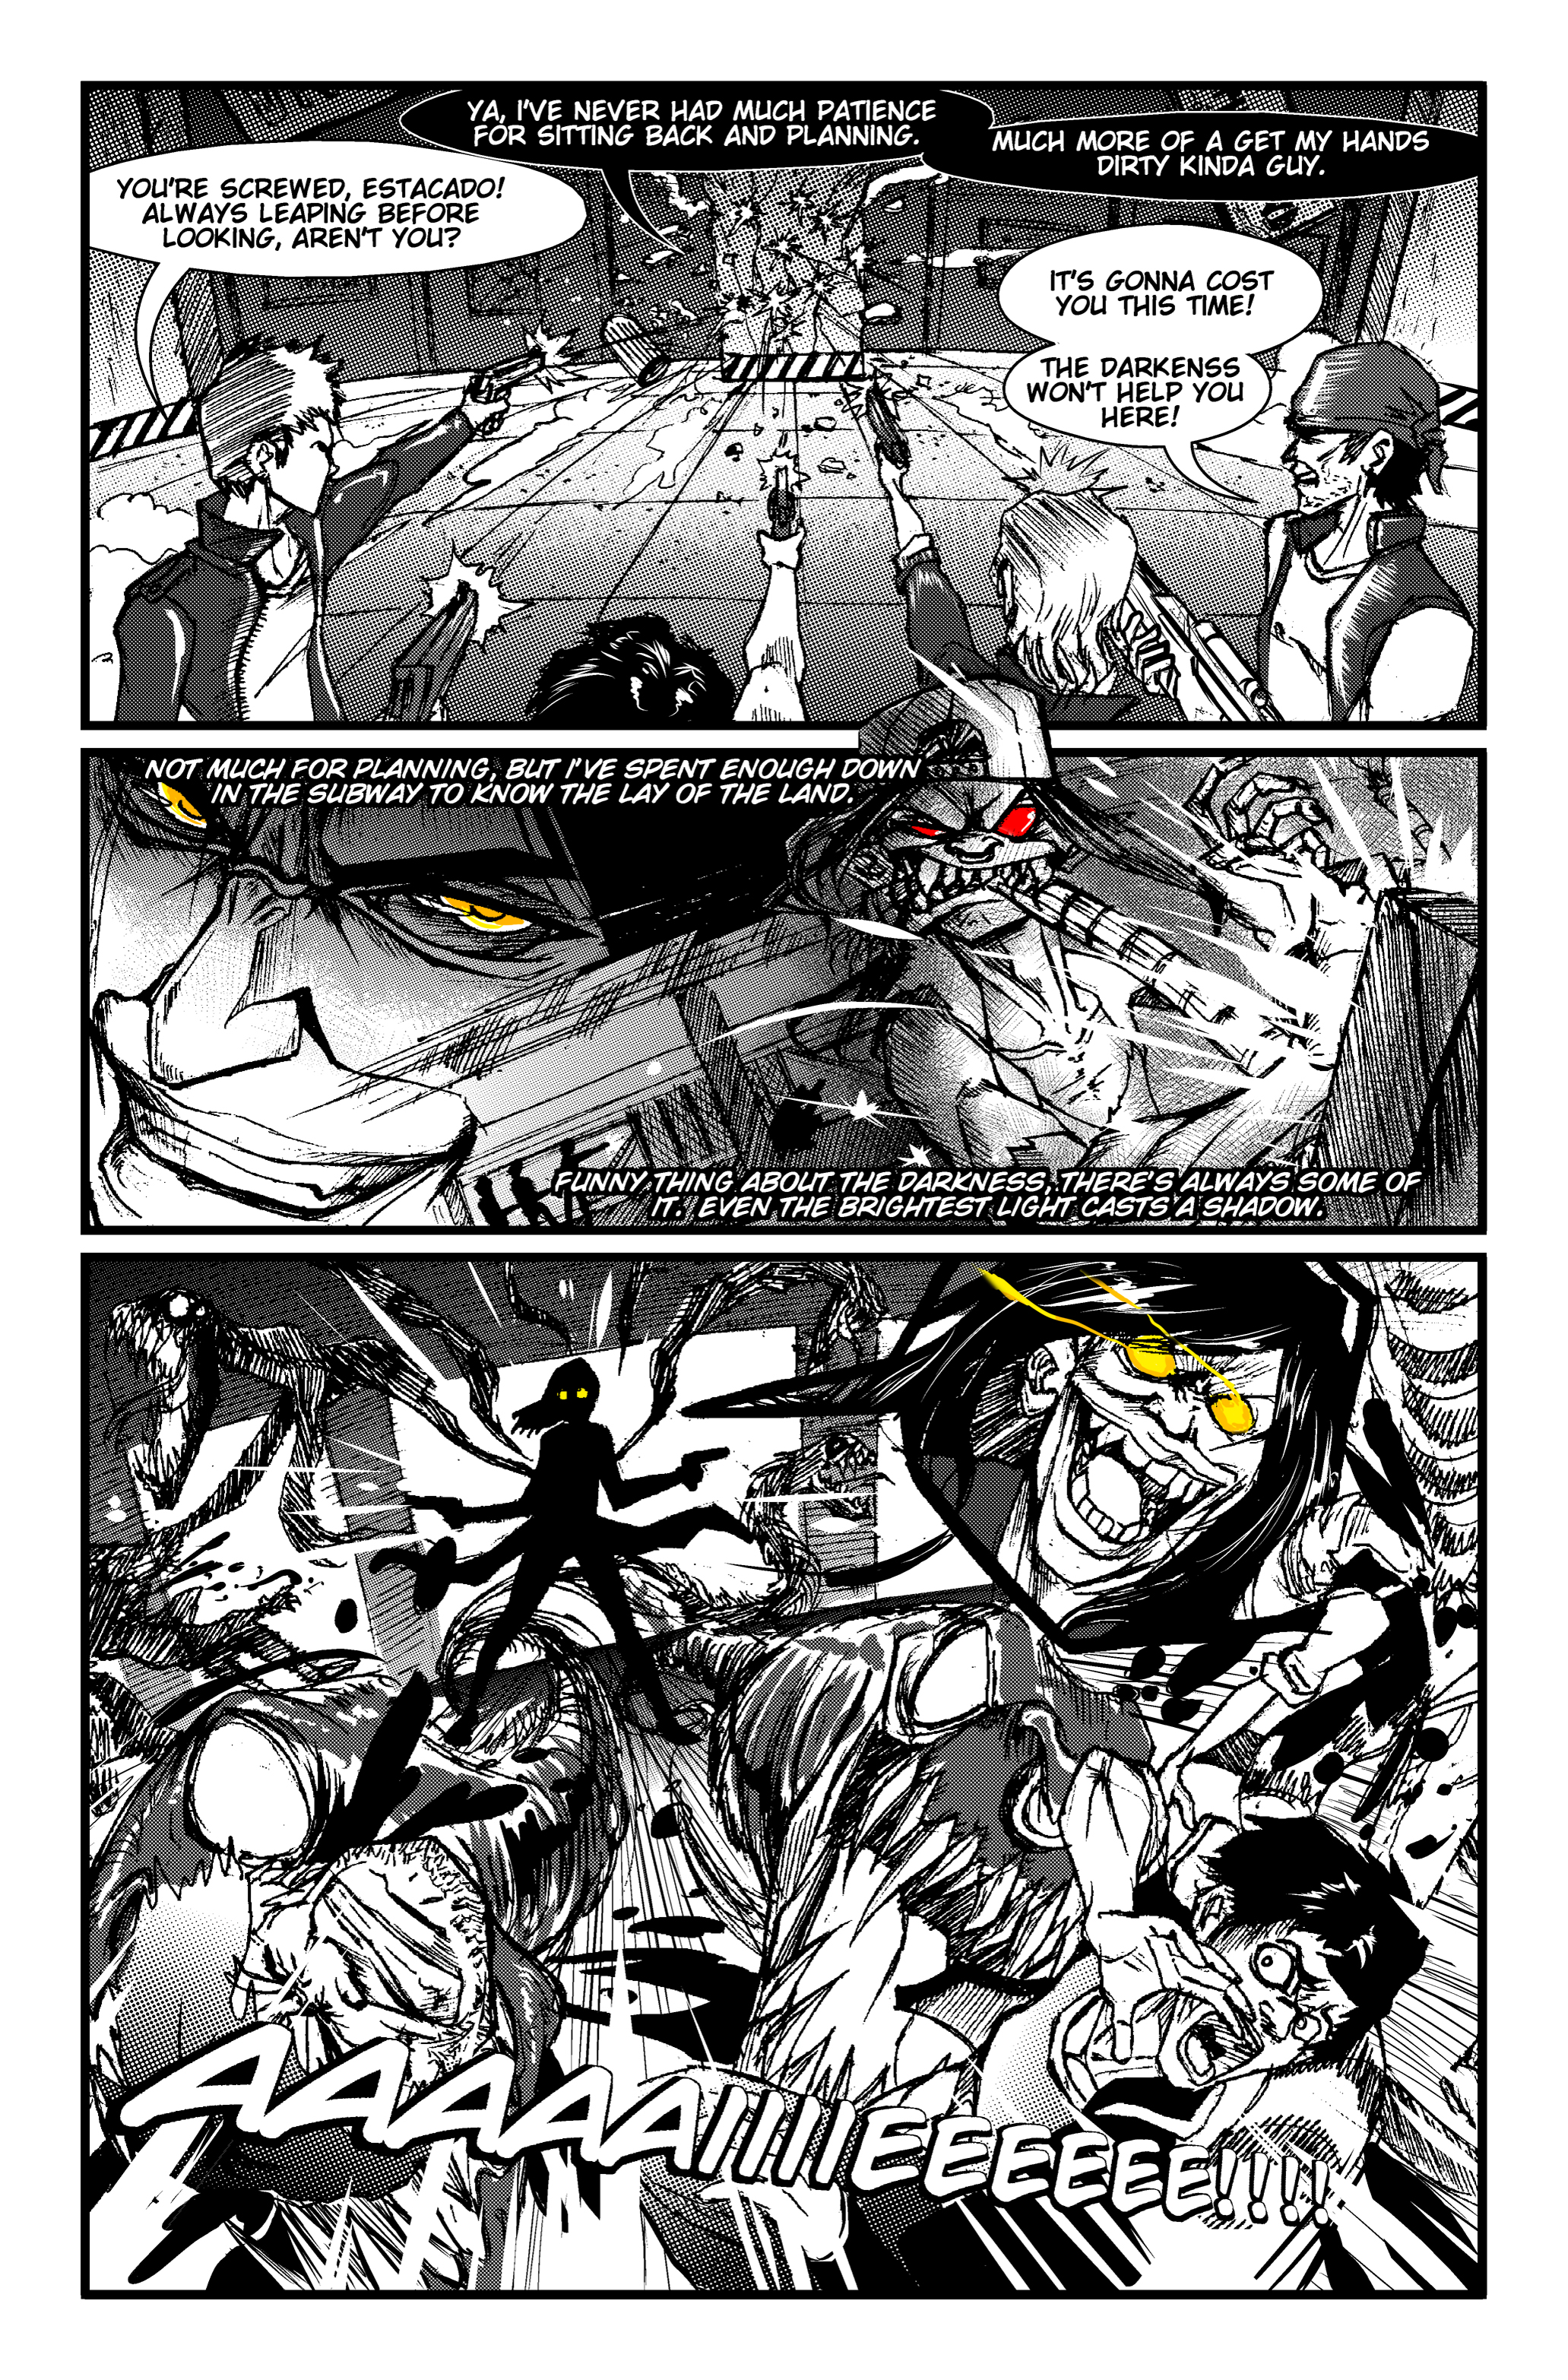 The Darkness Comic Contest By Raging Akujiki On Deviantart